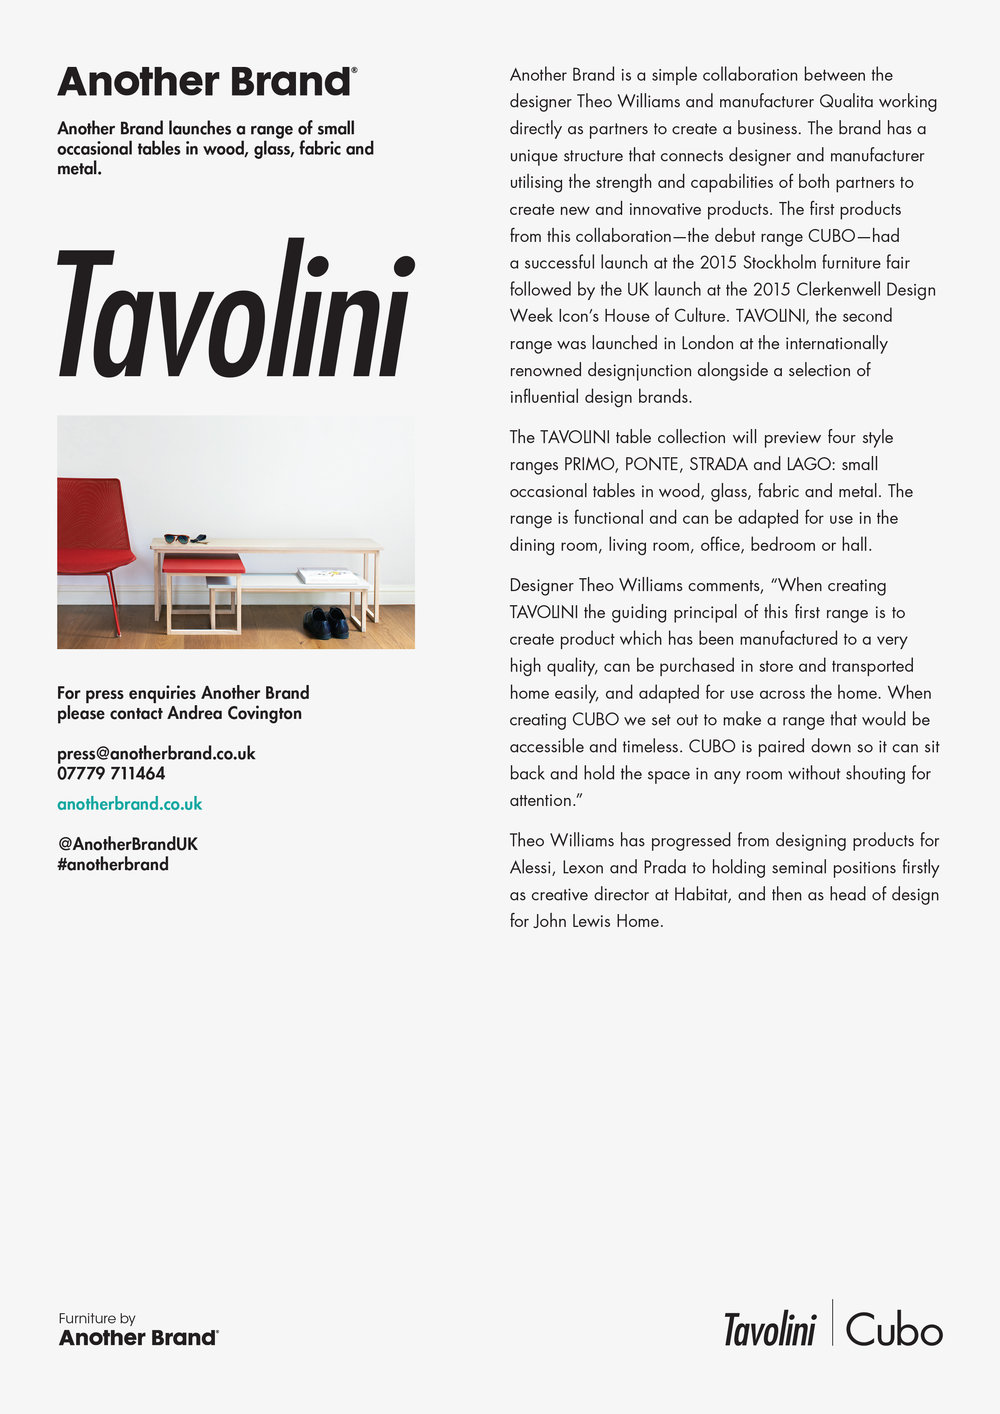 Launching Tavolini